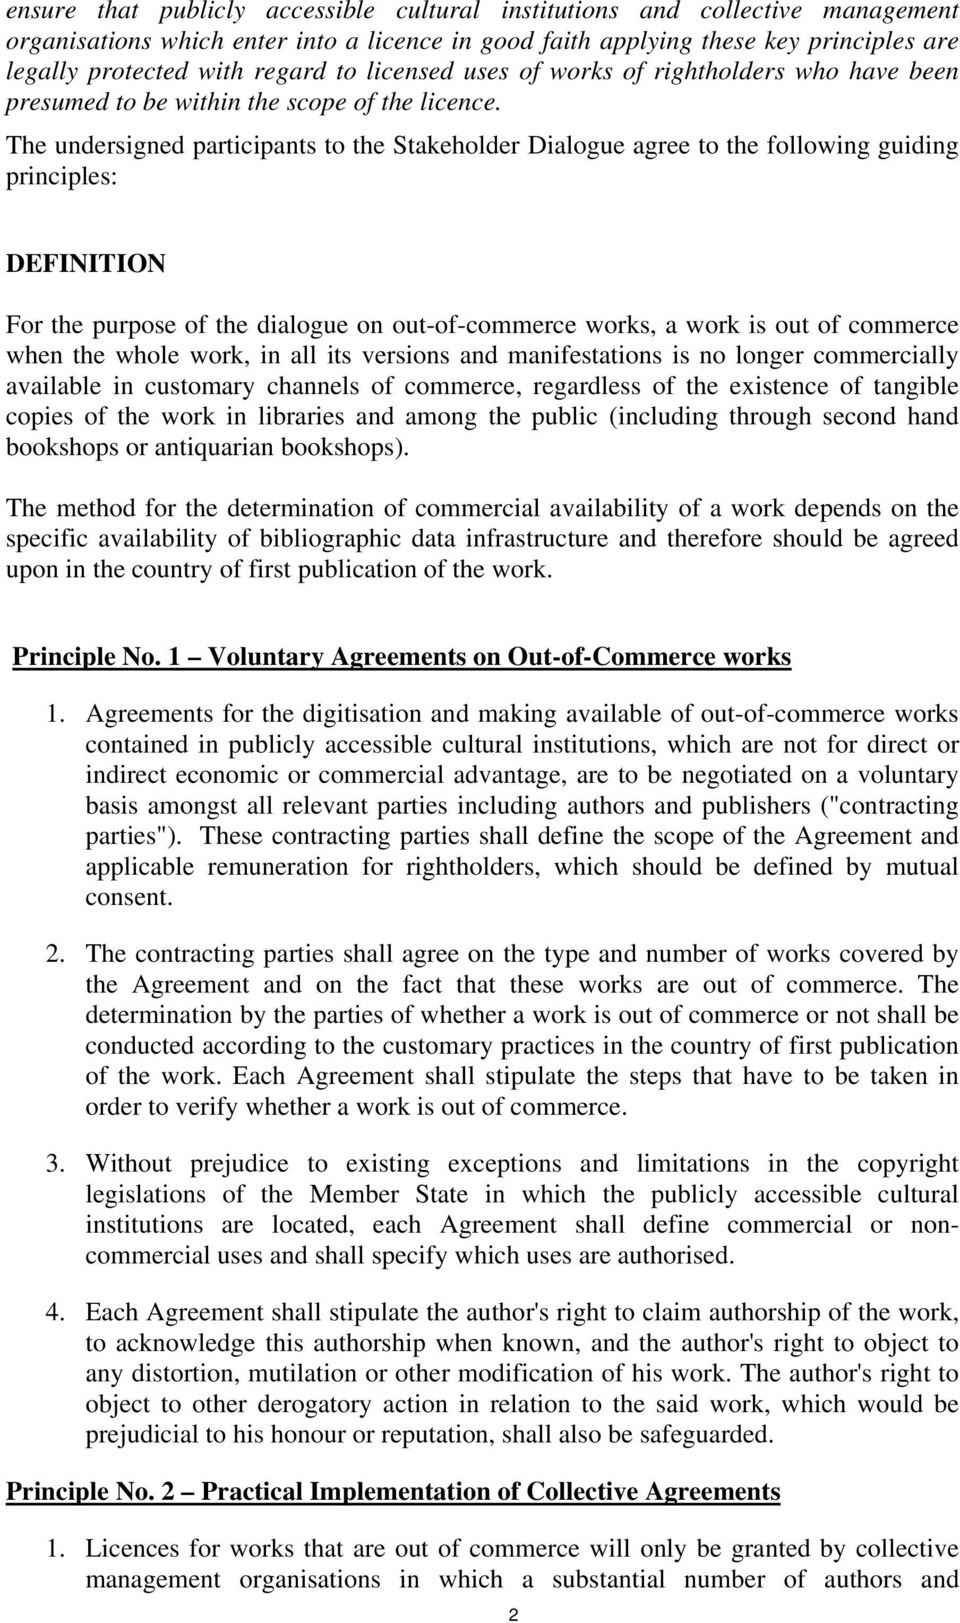 The undersigned participants to the Stakeholder Dialogue agree to the following guiding principles: DEFINITION For the purpose of the dialogue on out-of-commerce works, a work is out of commerce when